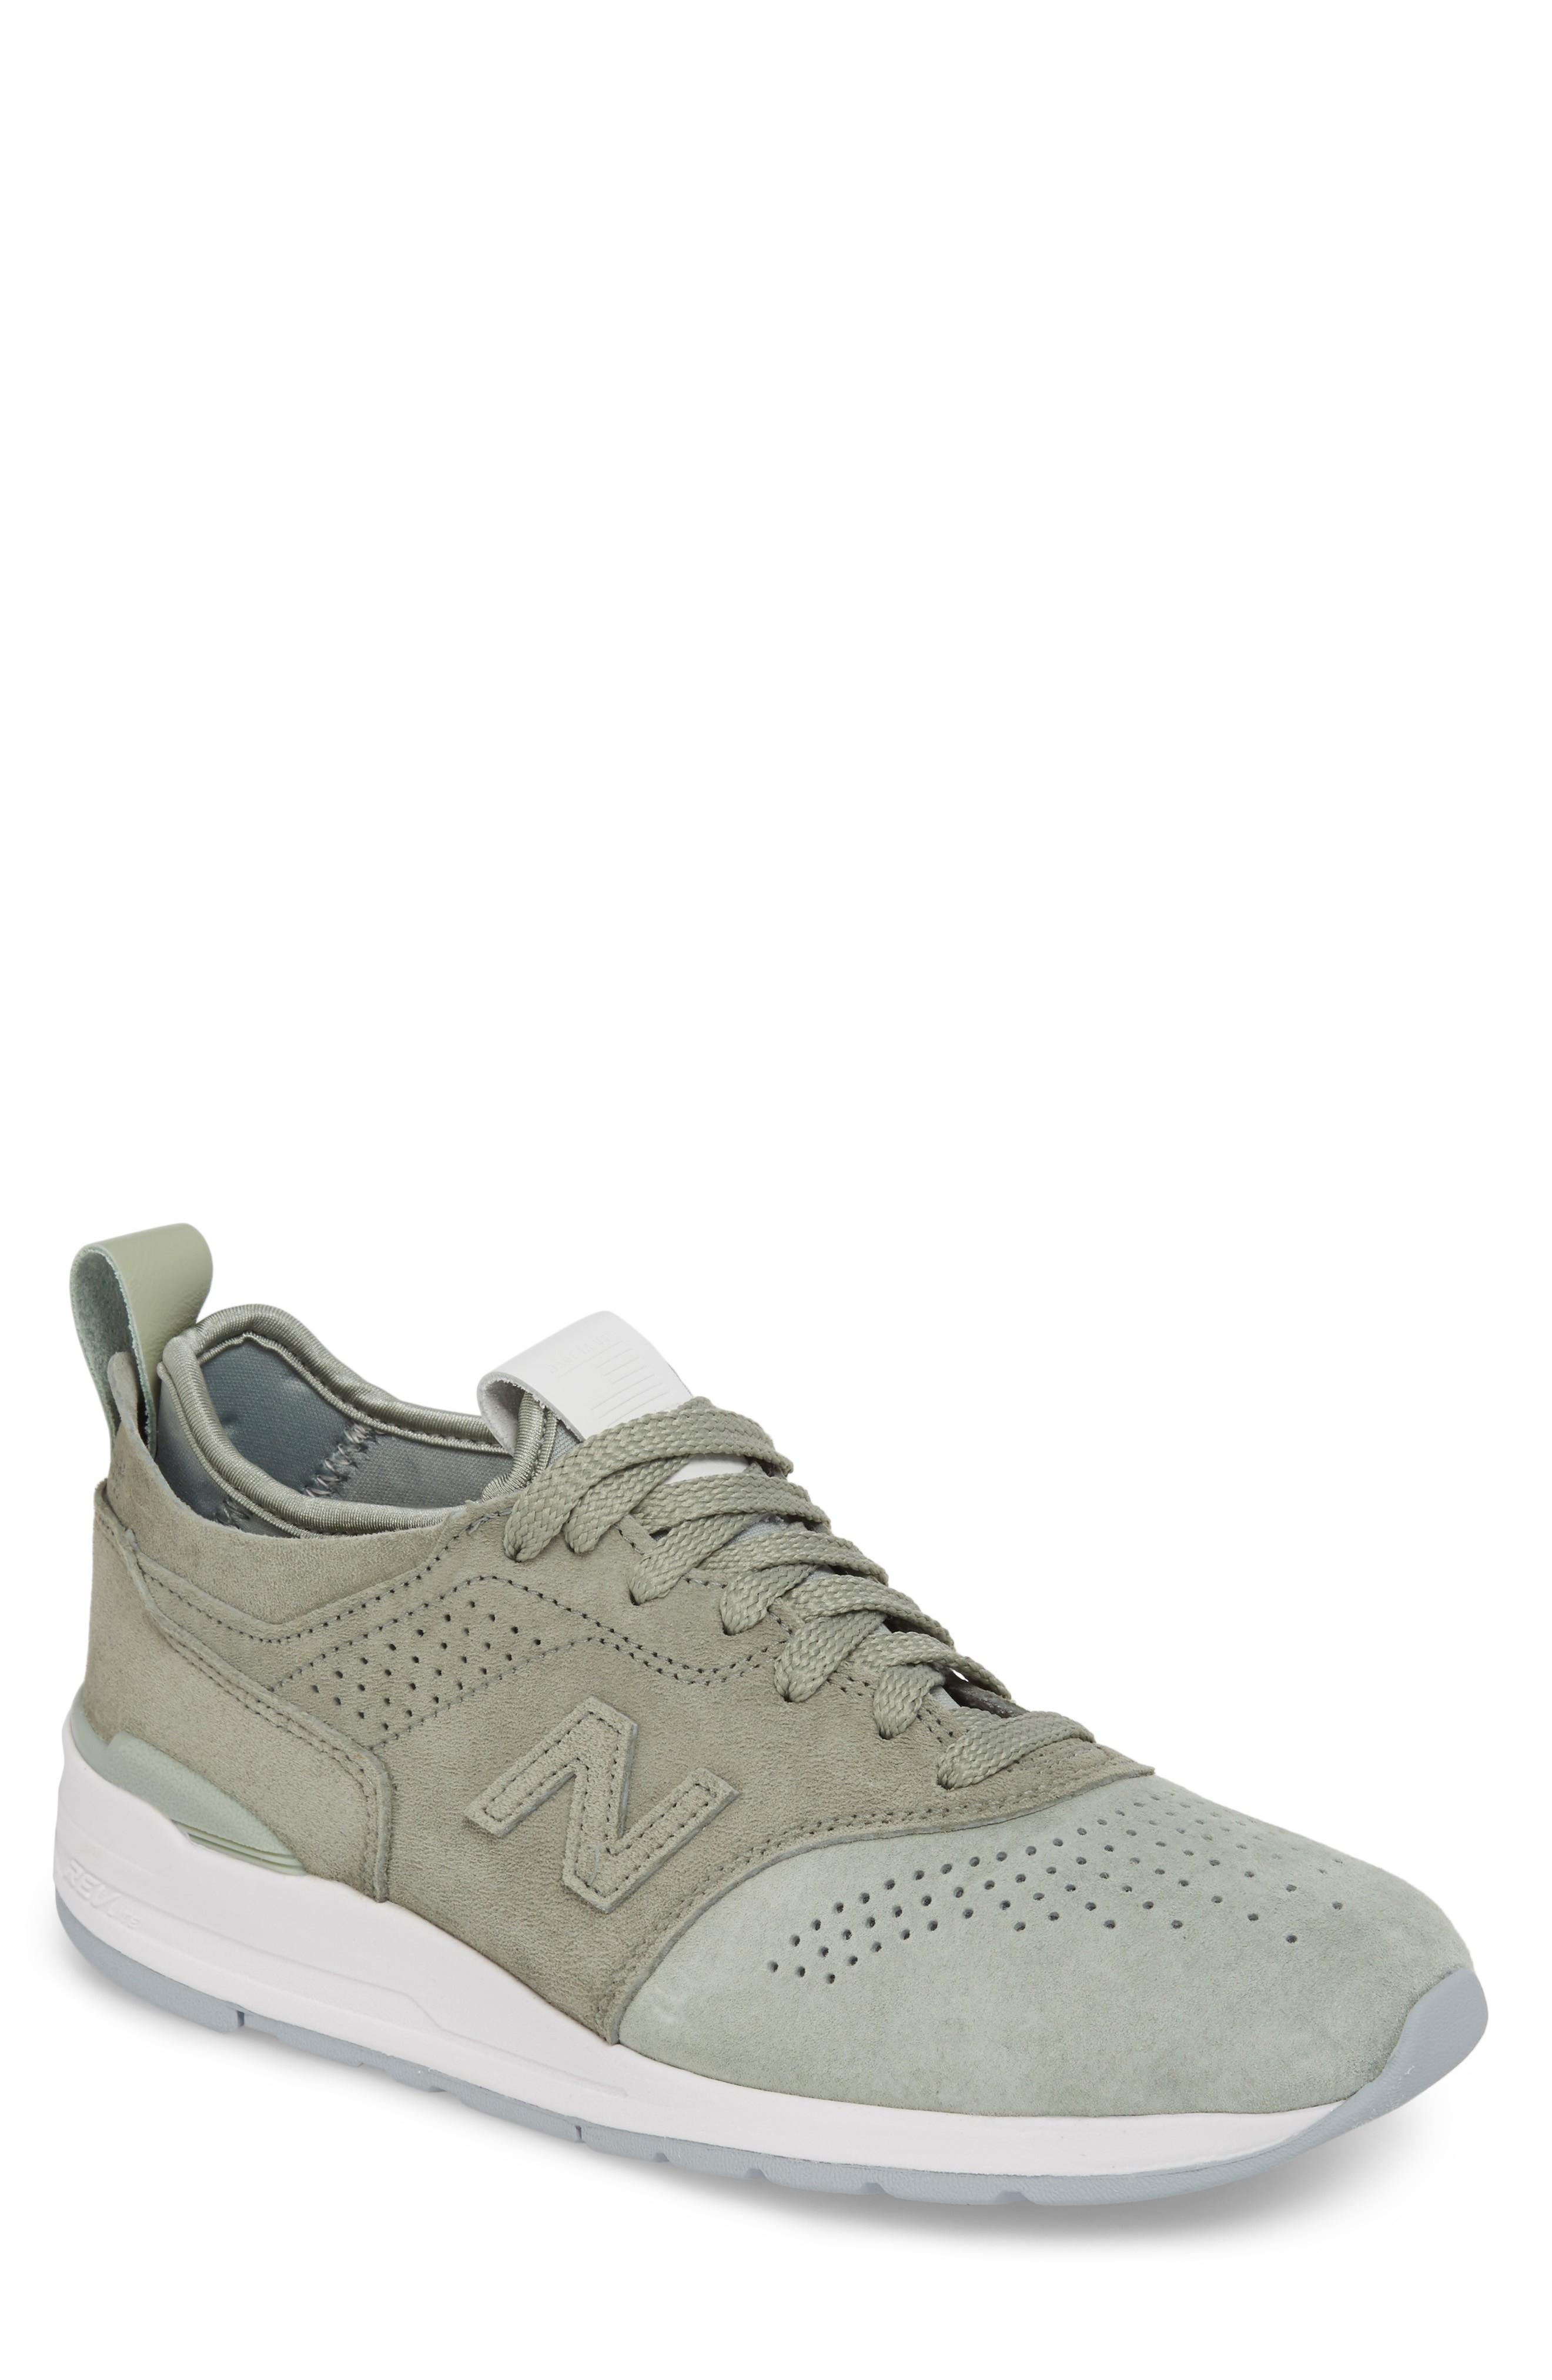 A veces a veces Parche espontáneo  New Balance 997r Perforated Sneaker In Silver Mint | ModeSens